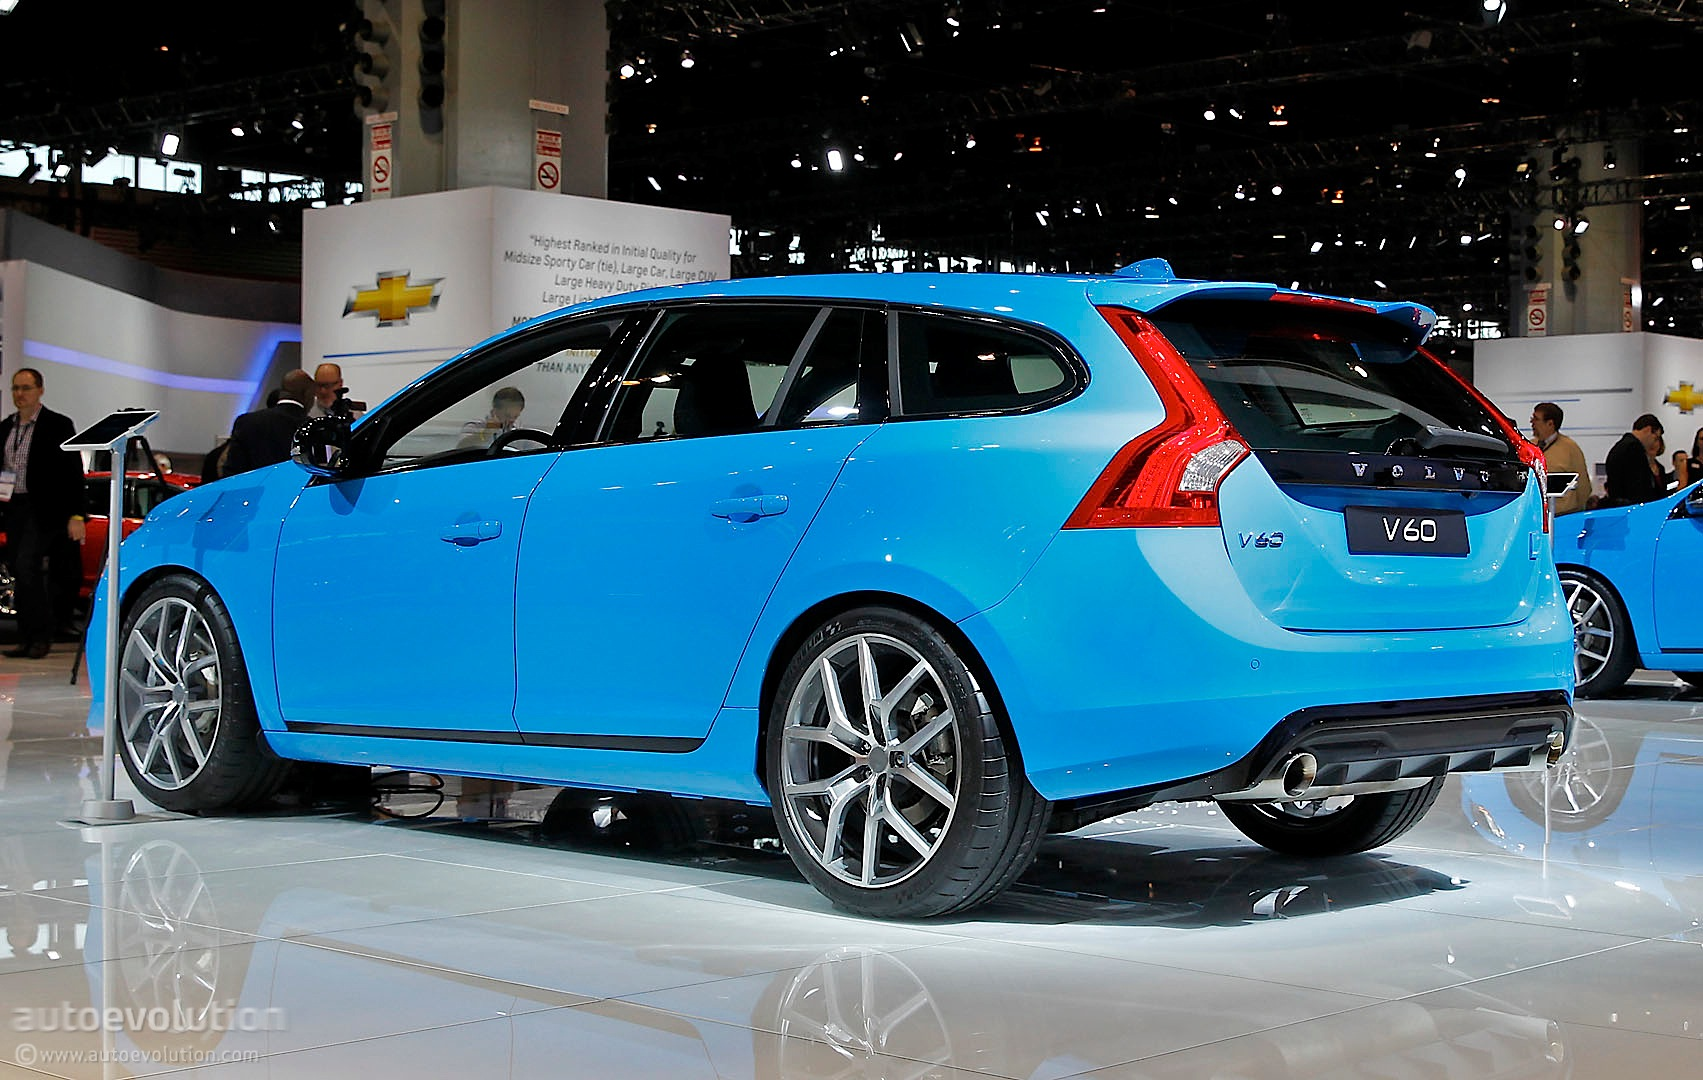 Volvo V60 Polestar Is a Blue Wagon in Chicago [Live Photo ...